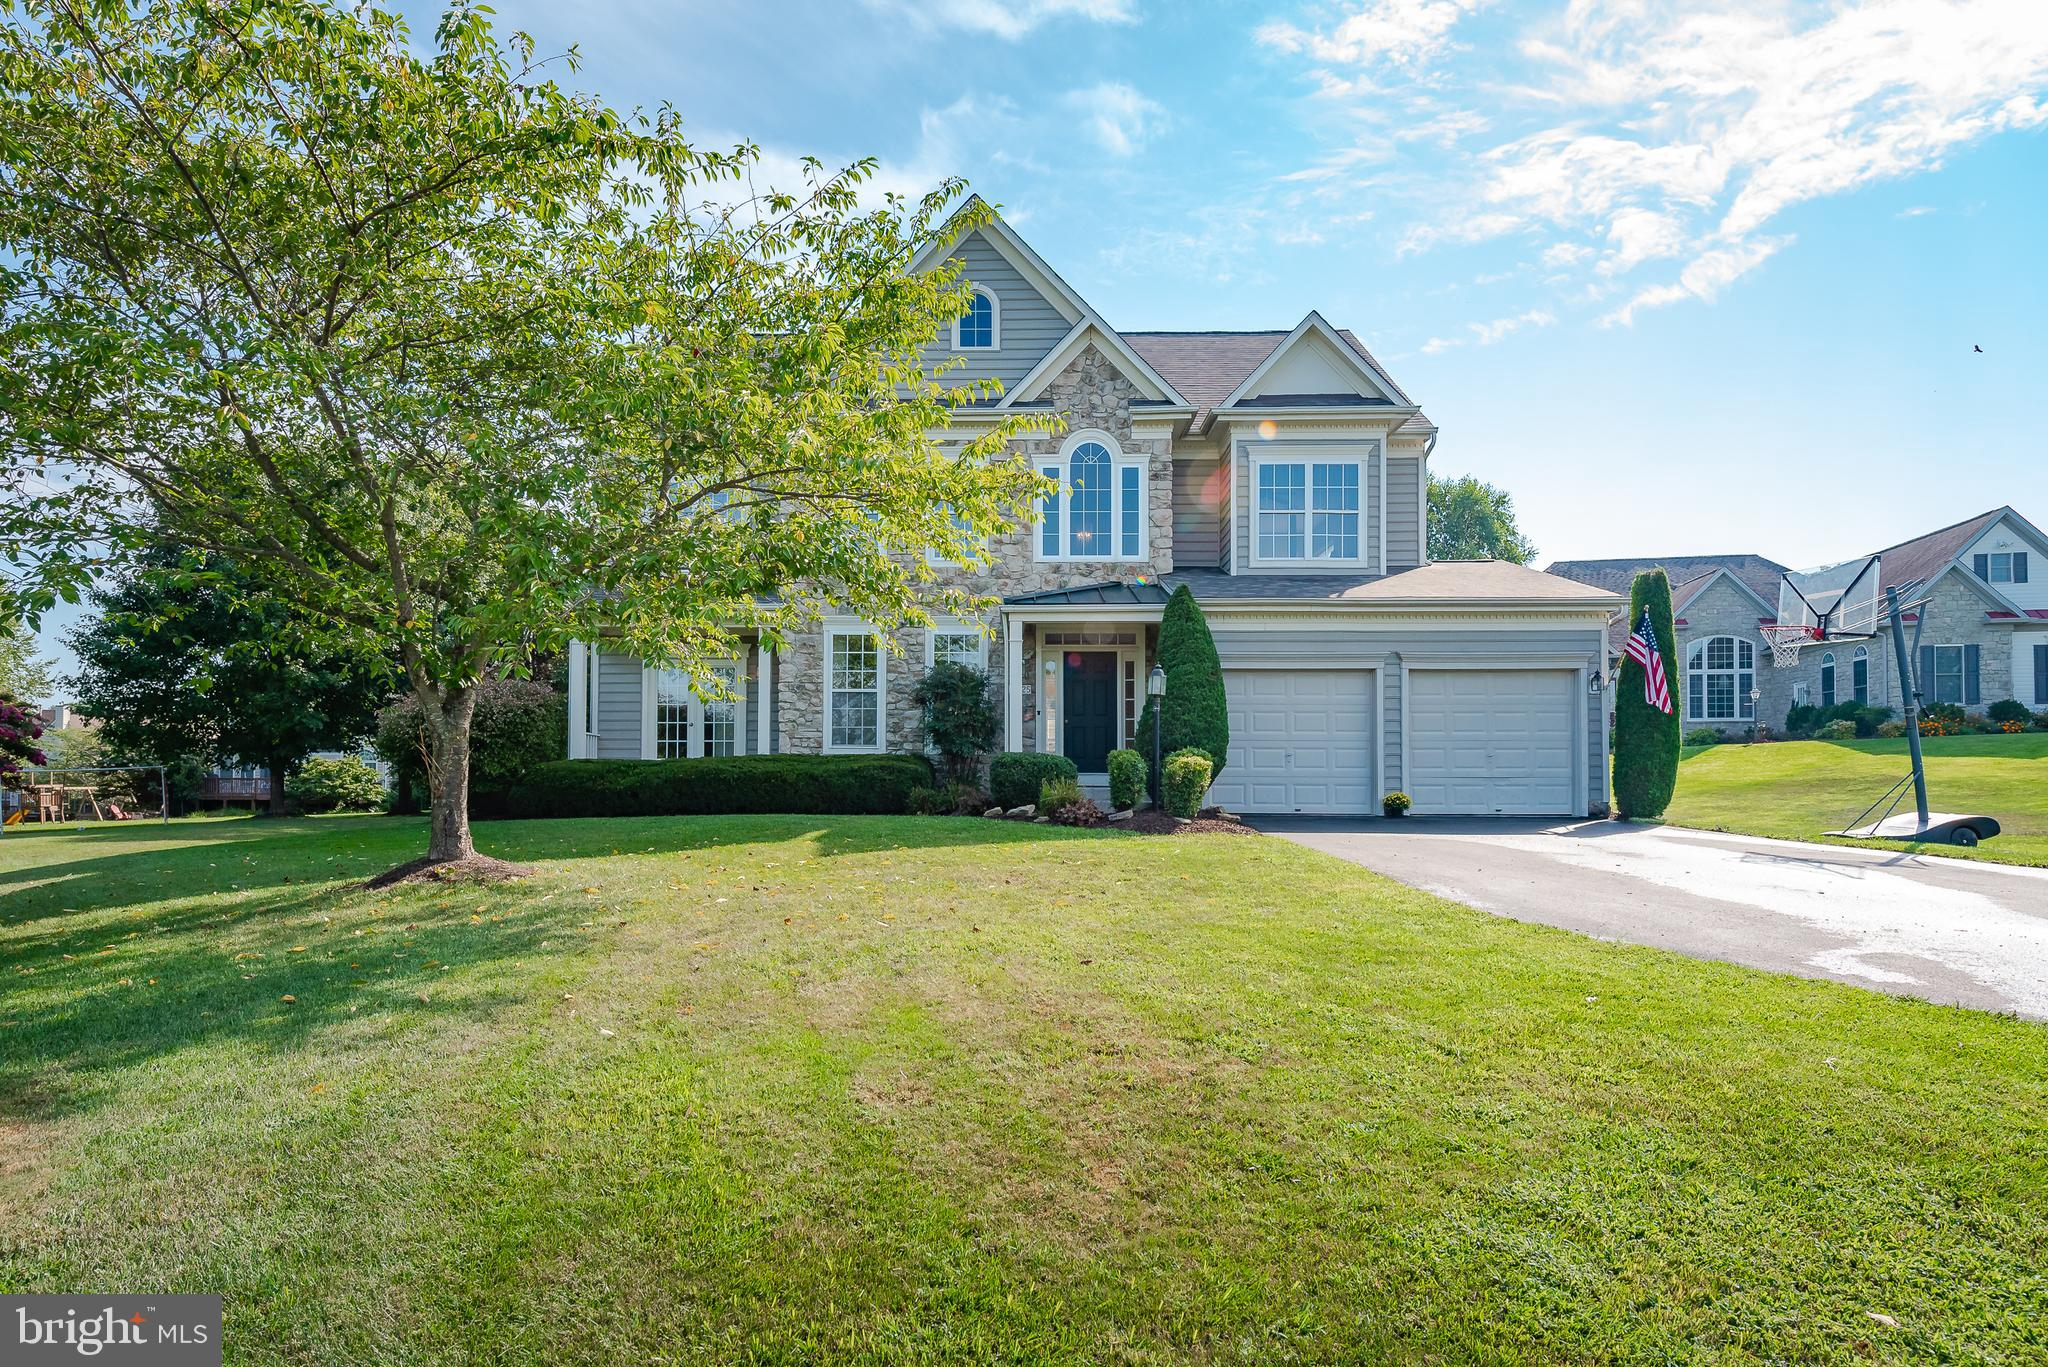 10525 DORCHESTER WAY, WOODSTOCK, MD 21163